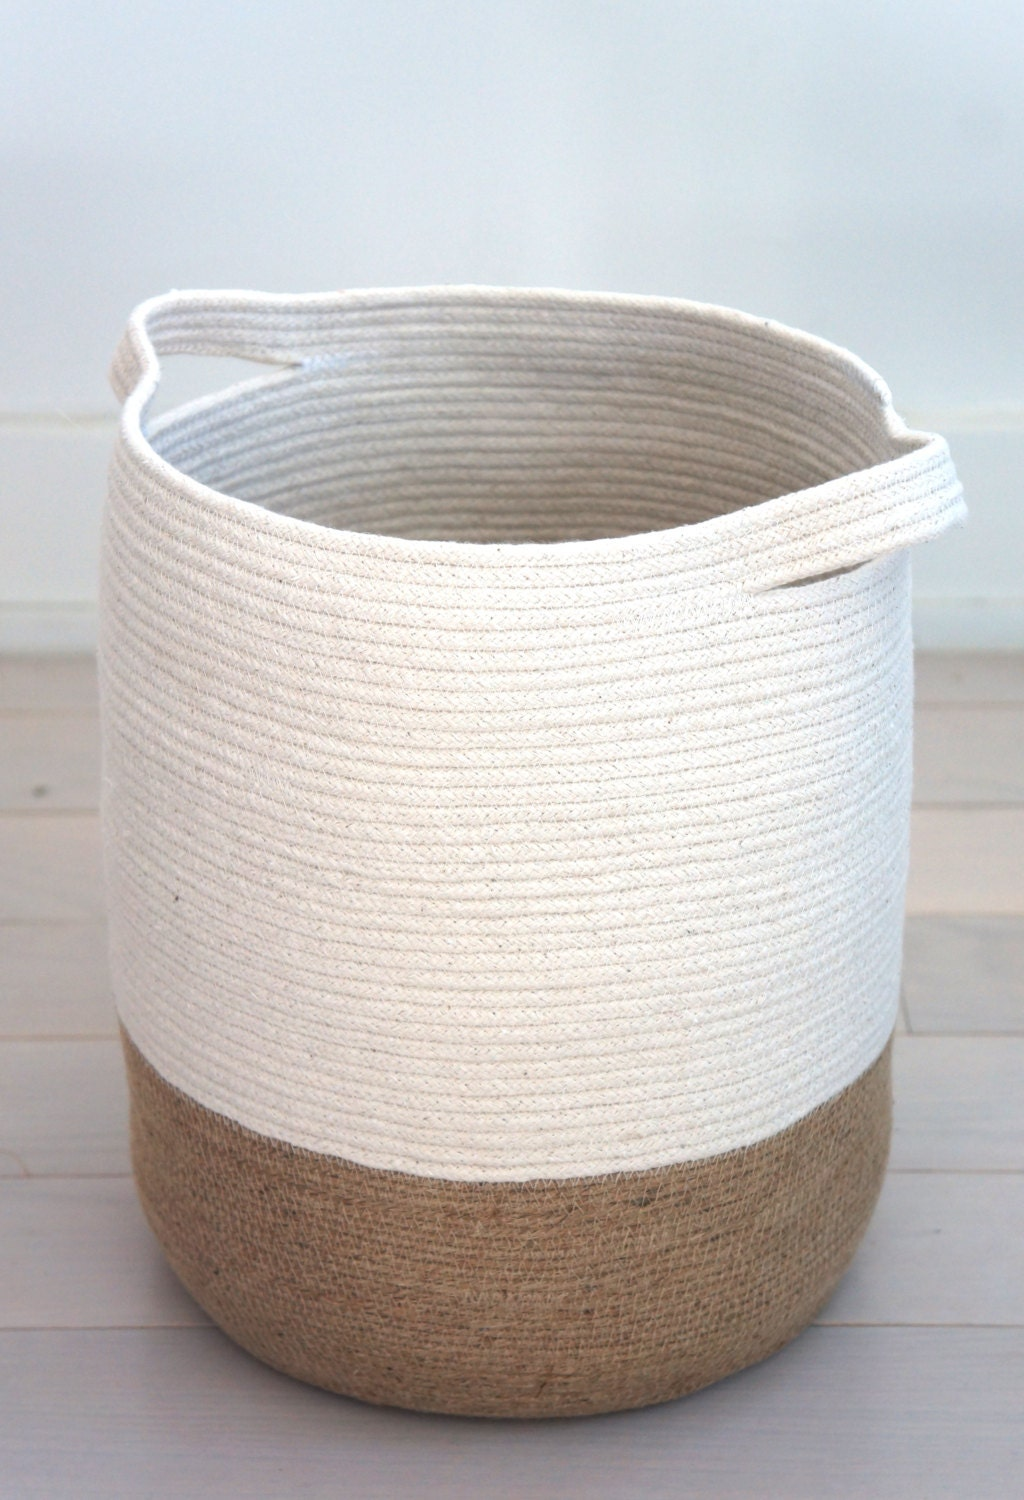 Handmade Cotton Baskets : Small jute and cotton rope basket by yoonmileehome on etsy